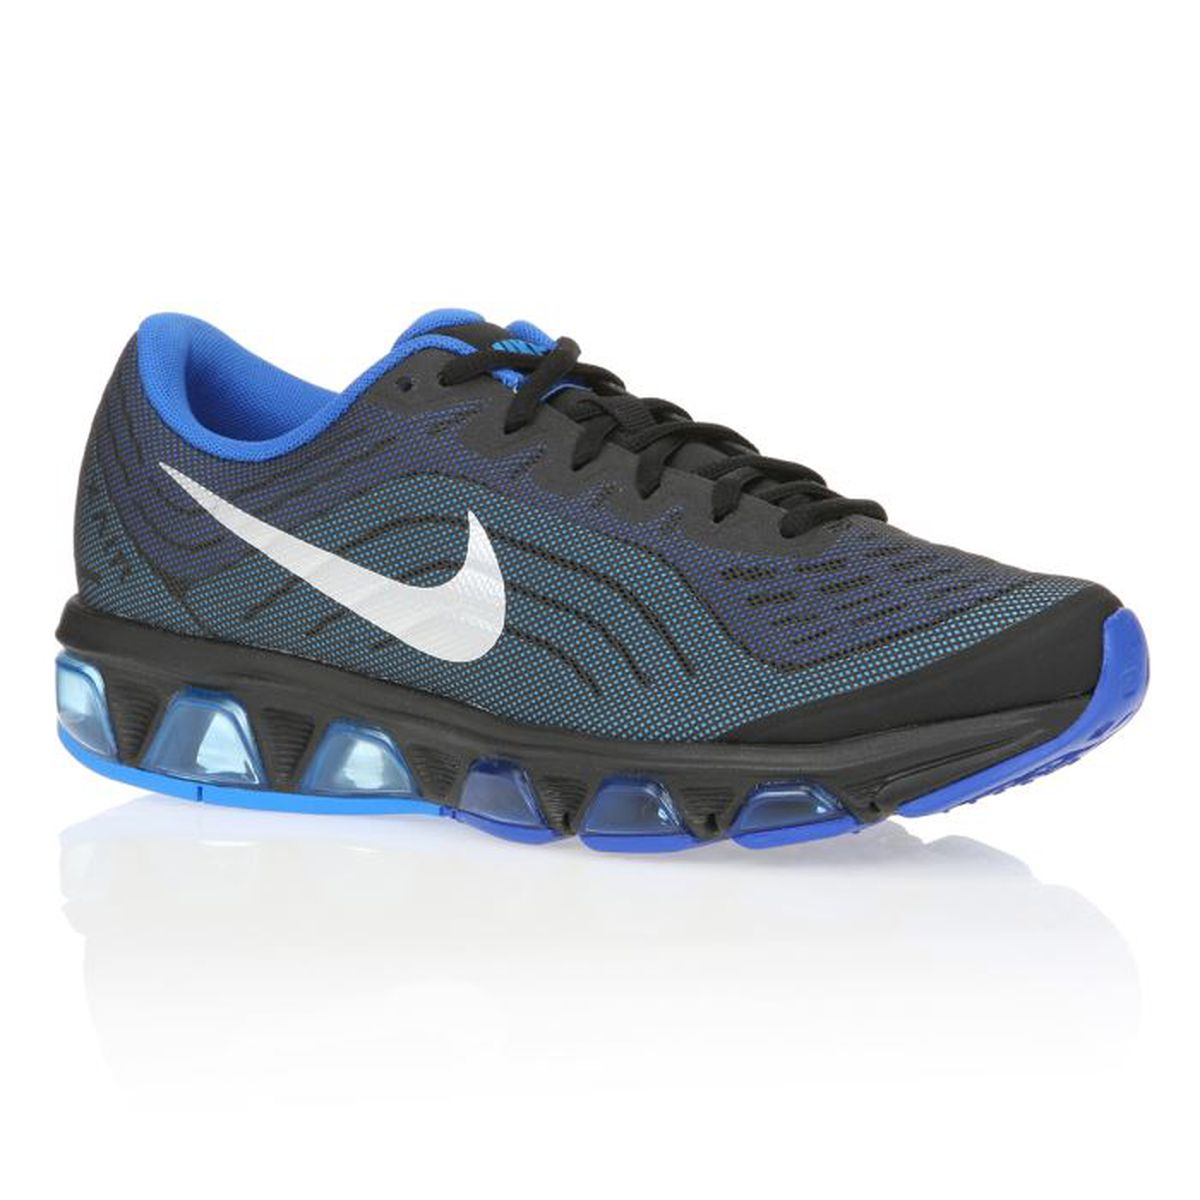 nike chaussures enfants jeu - NIKE Chaussures Air Max Tailwind 6 Homme - Prix pas cher - Cdiscount